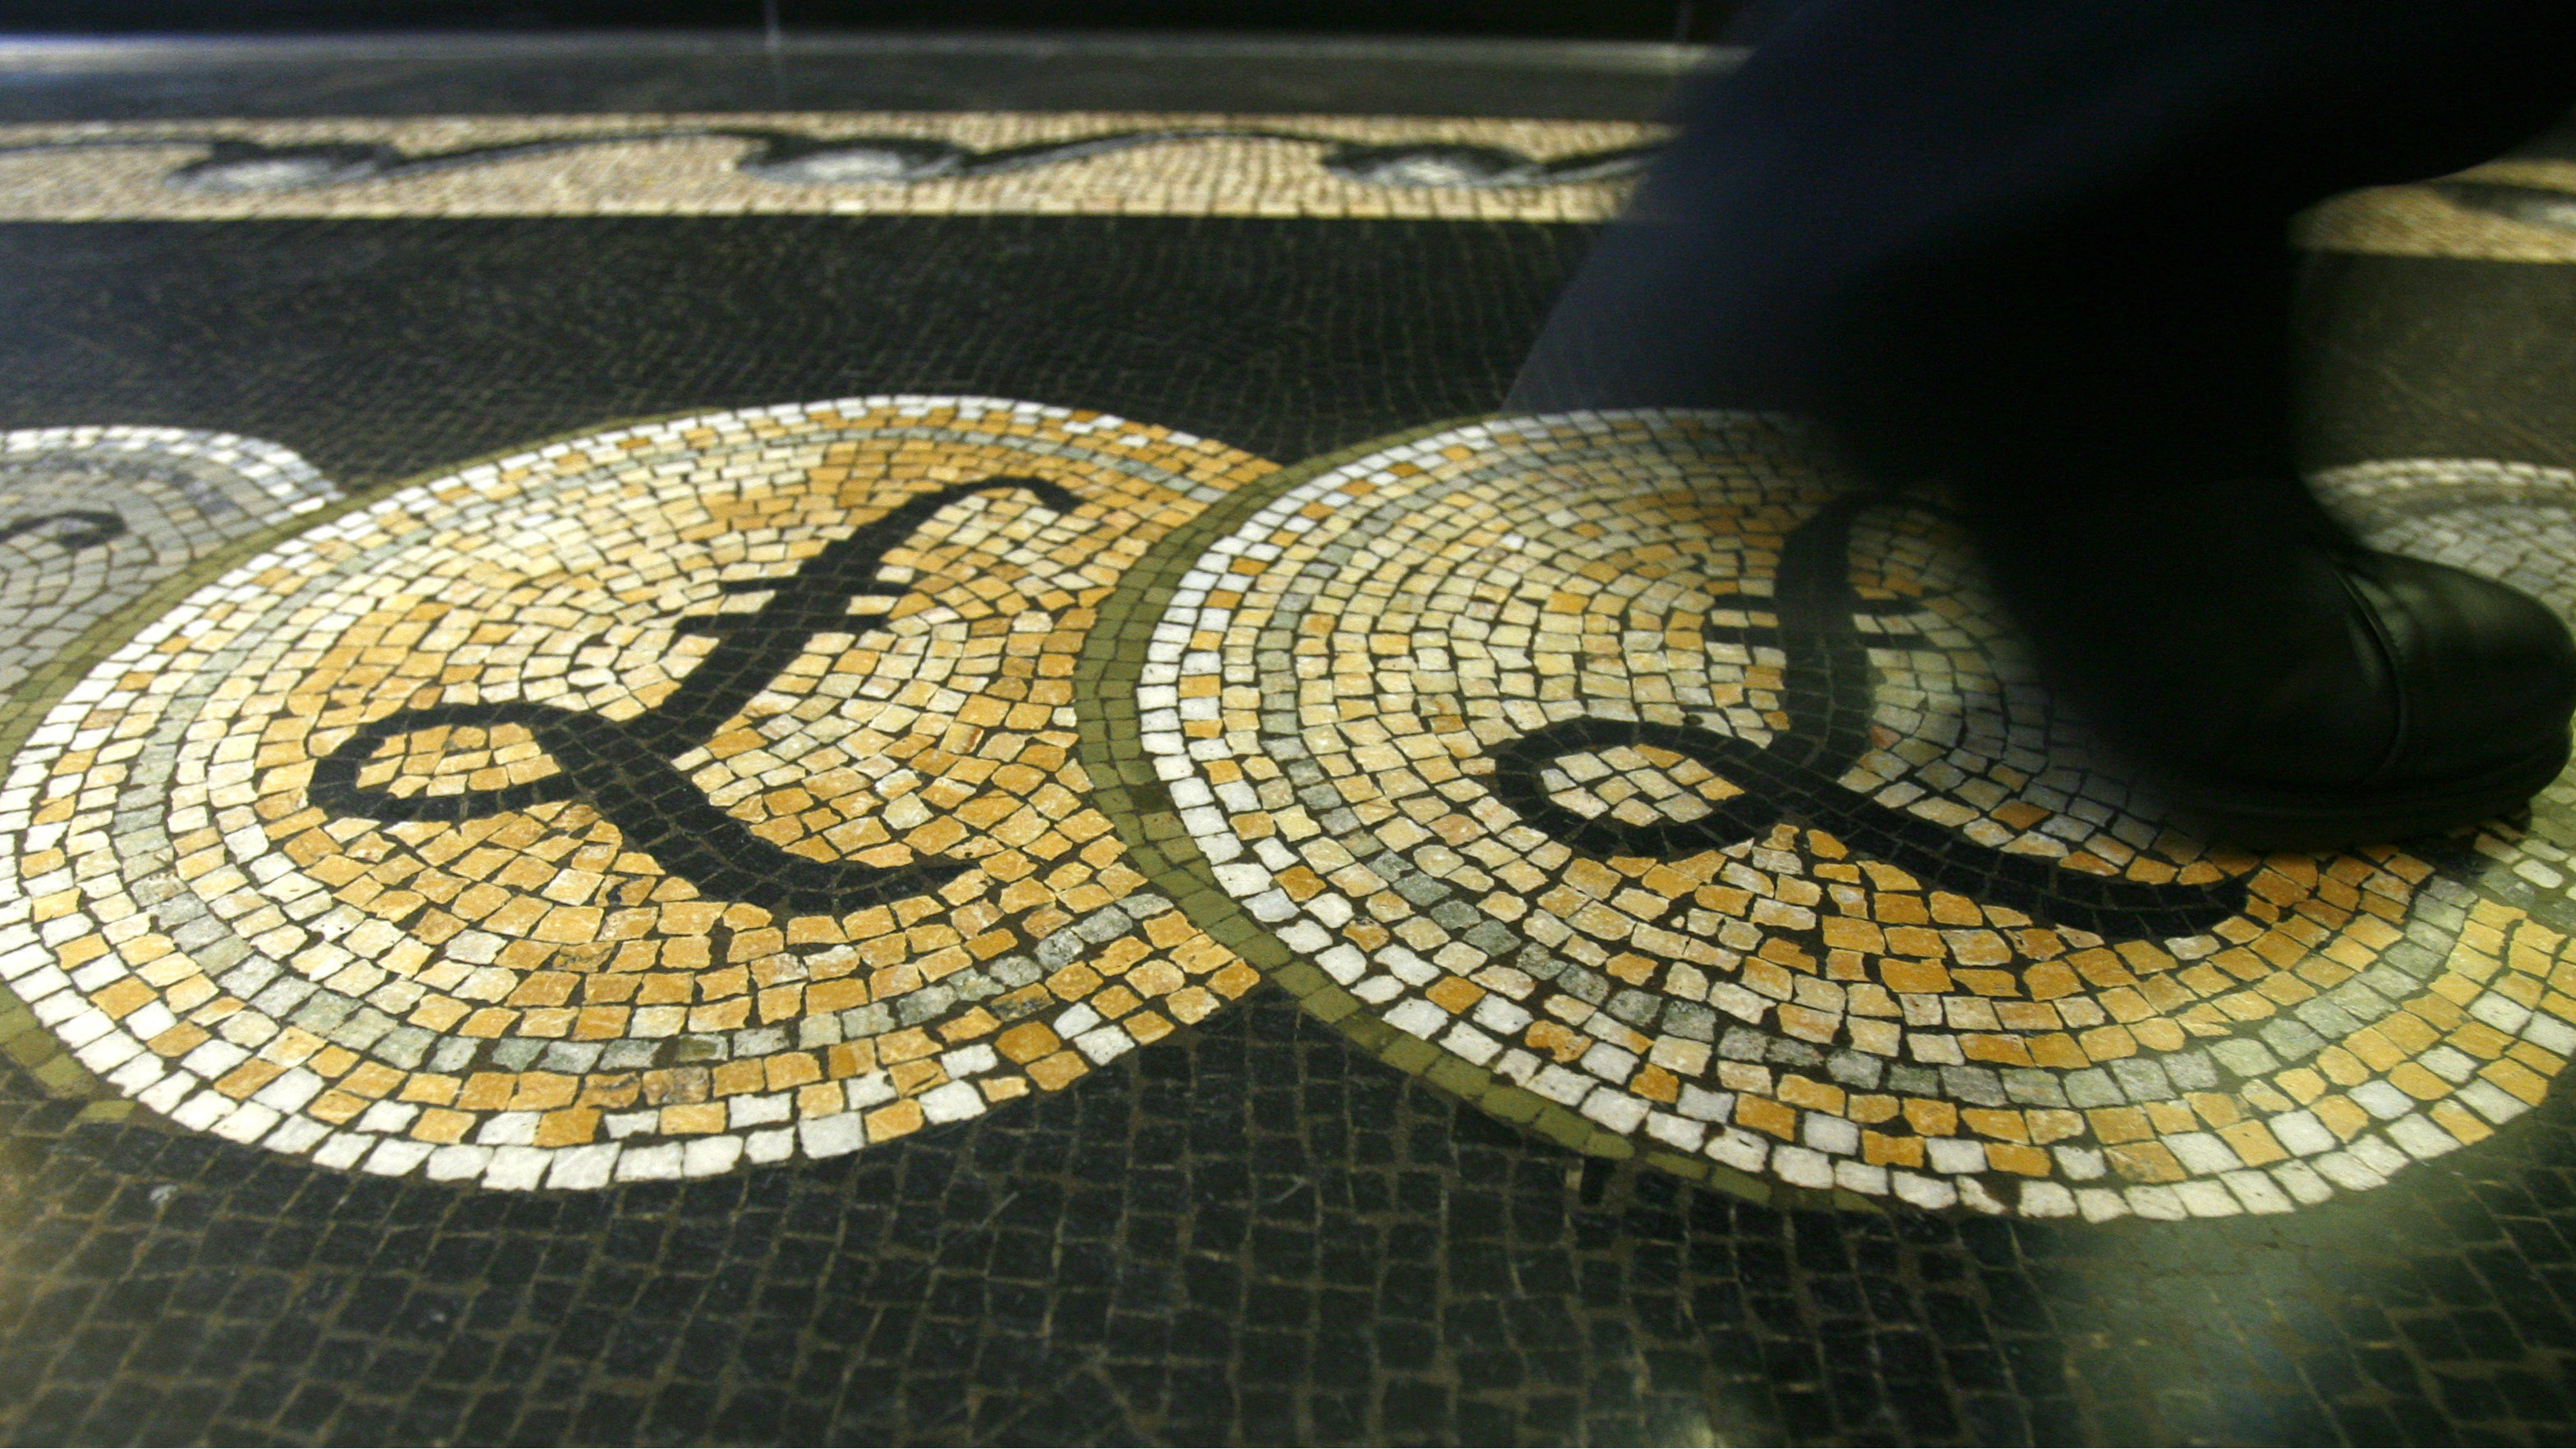 Mosaic of British pound signs